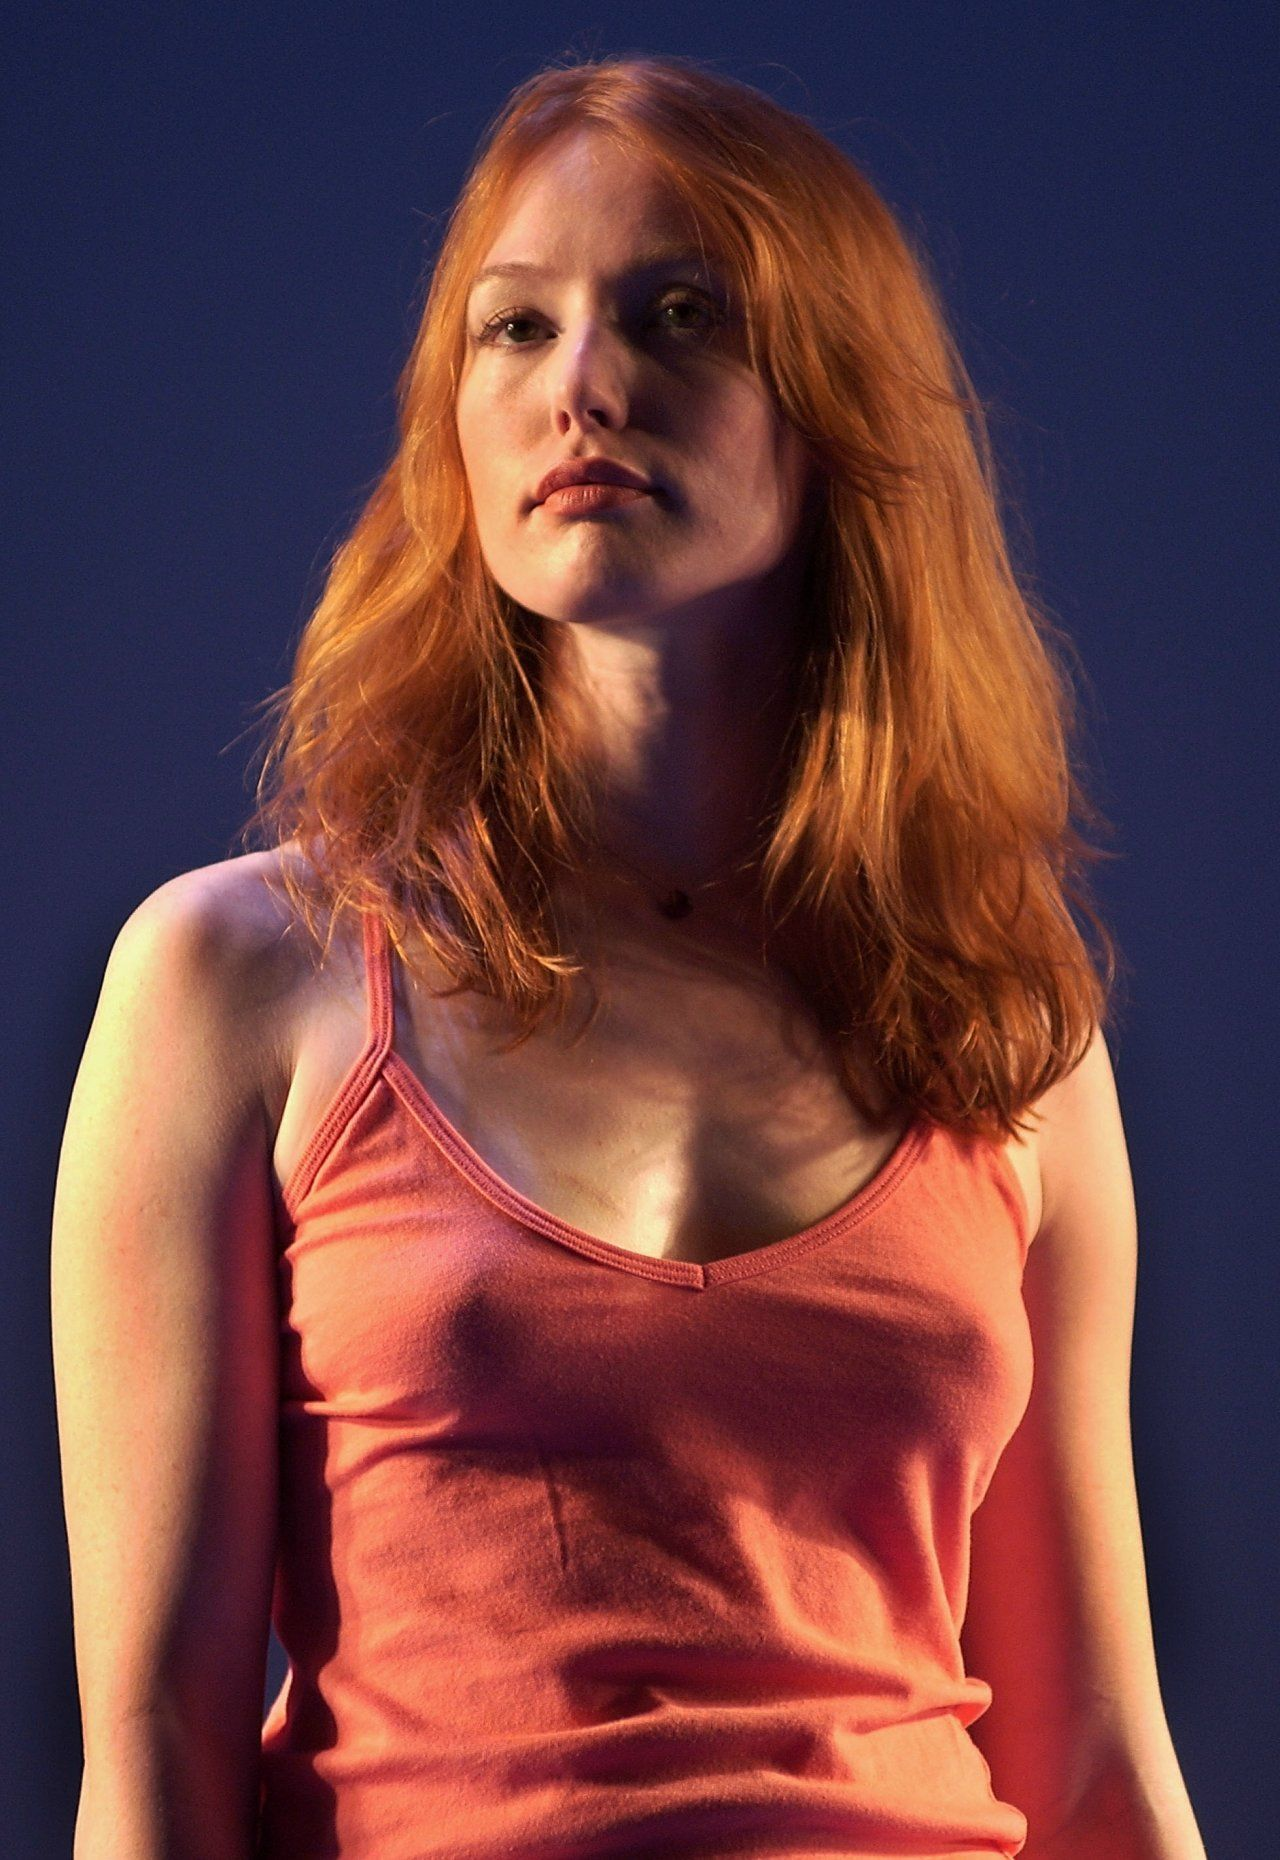 Pic Alicia Witt nude (61 photo), Tits, Leaked, Instagram, cameltoe 2019